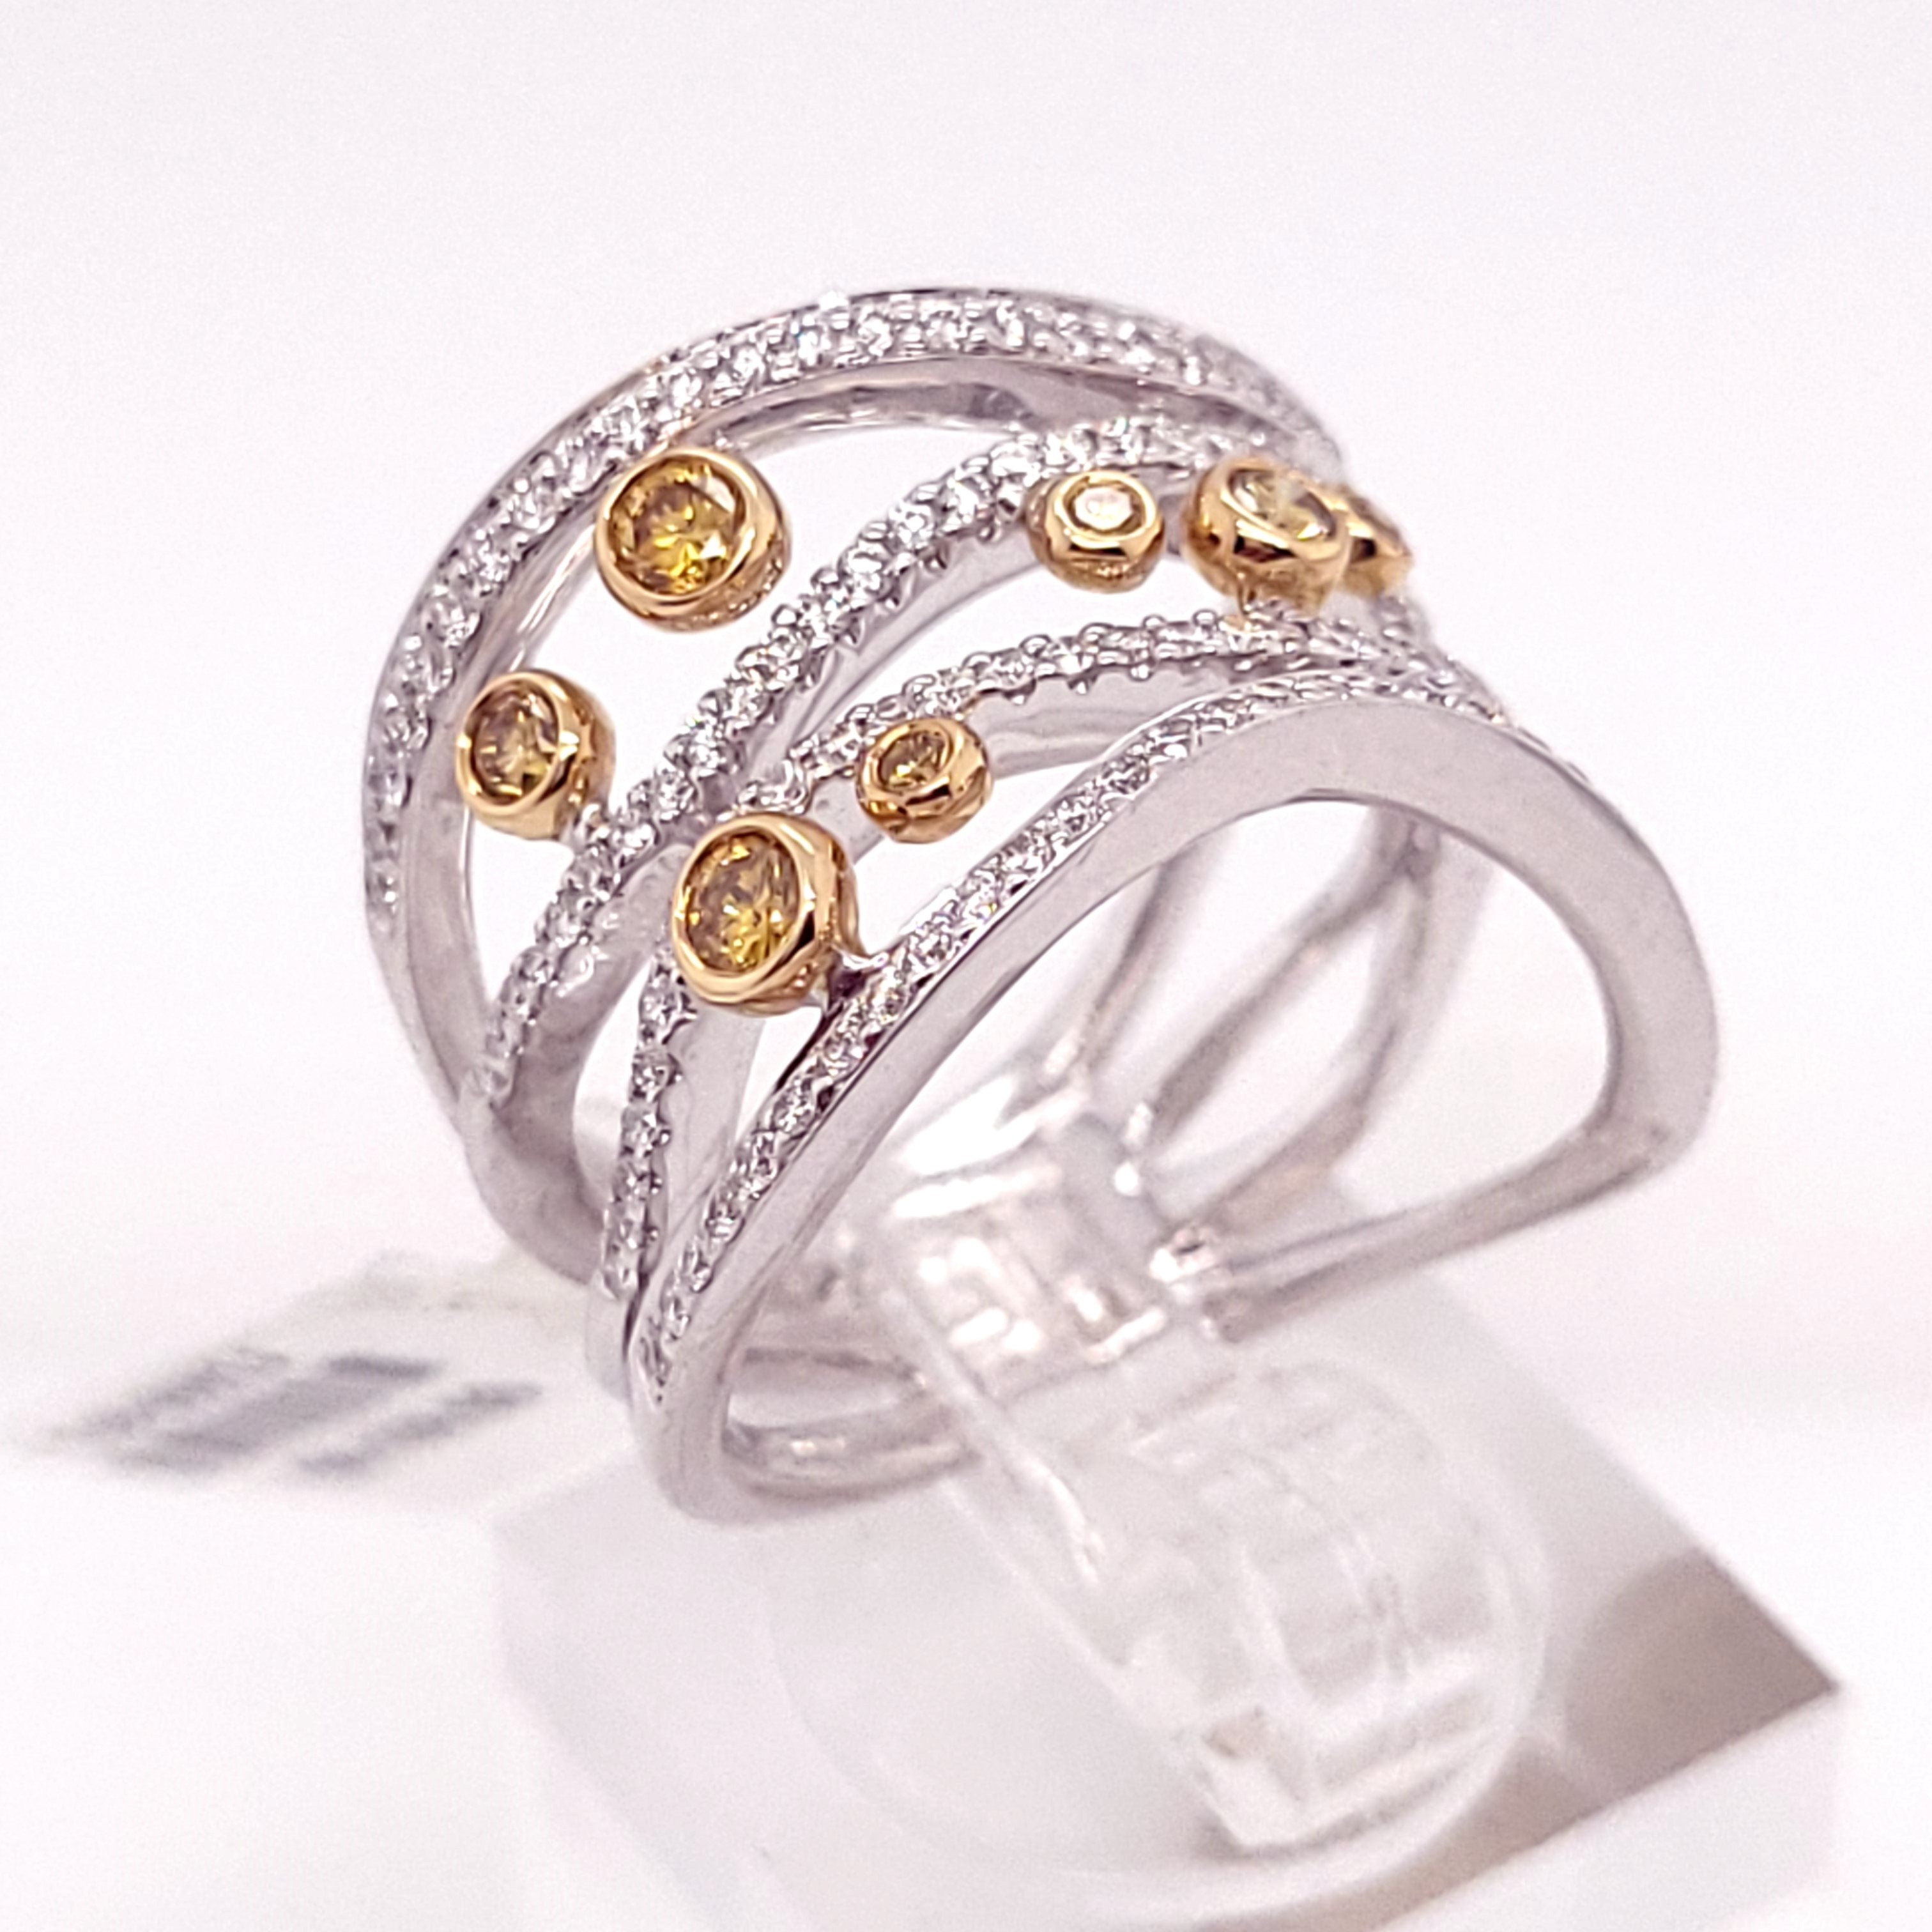 Women's Diamond Fashion Rings - 001-130-00013